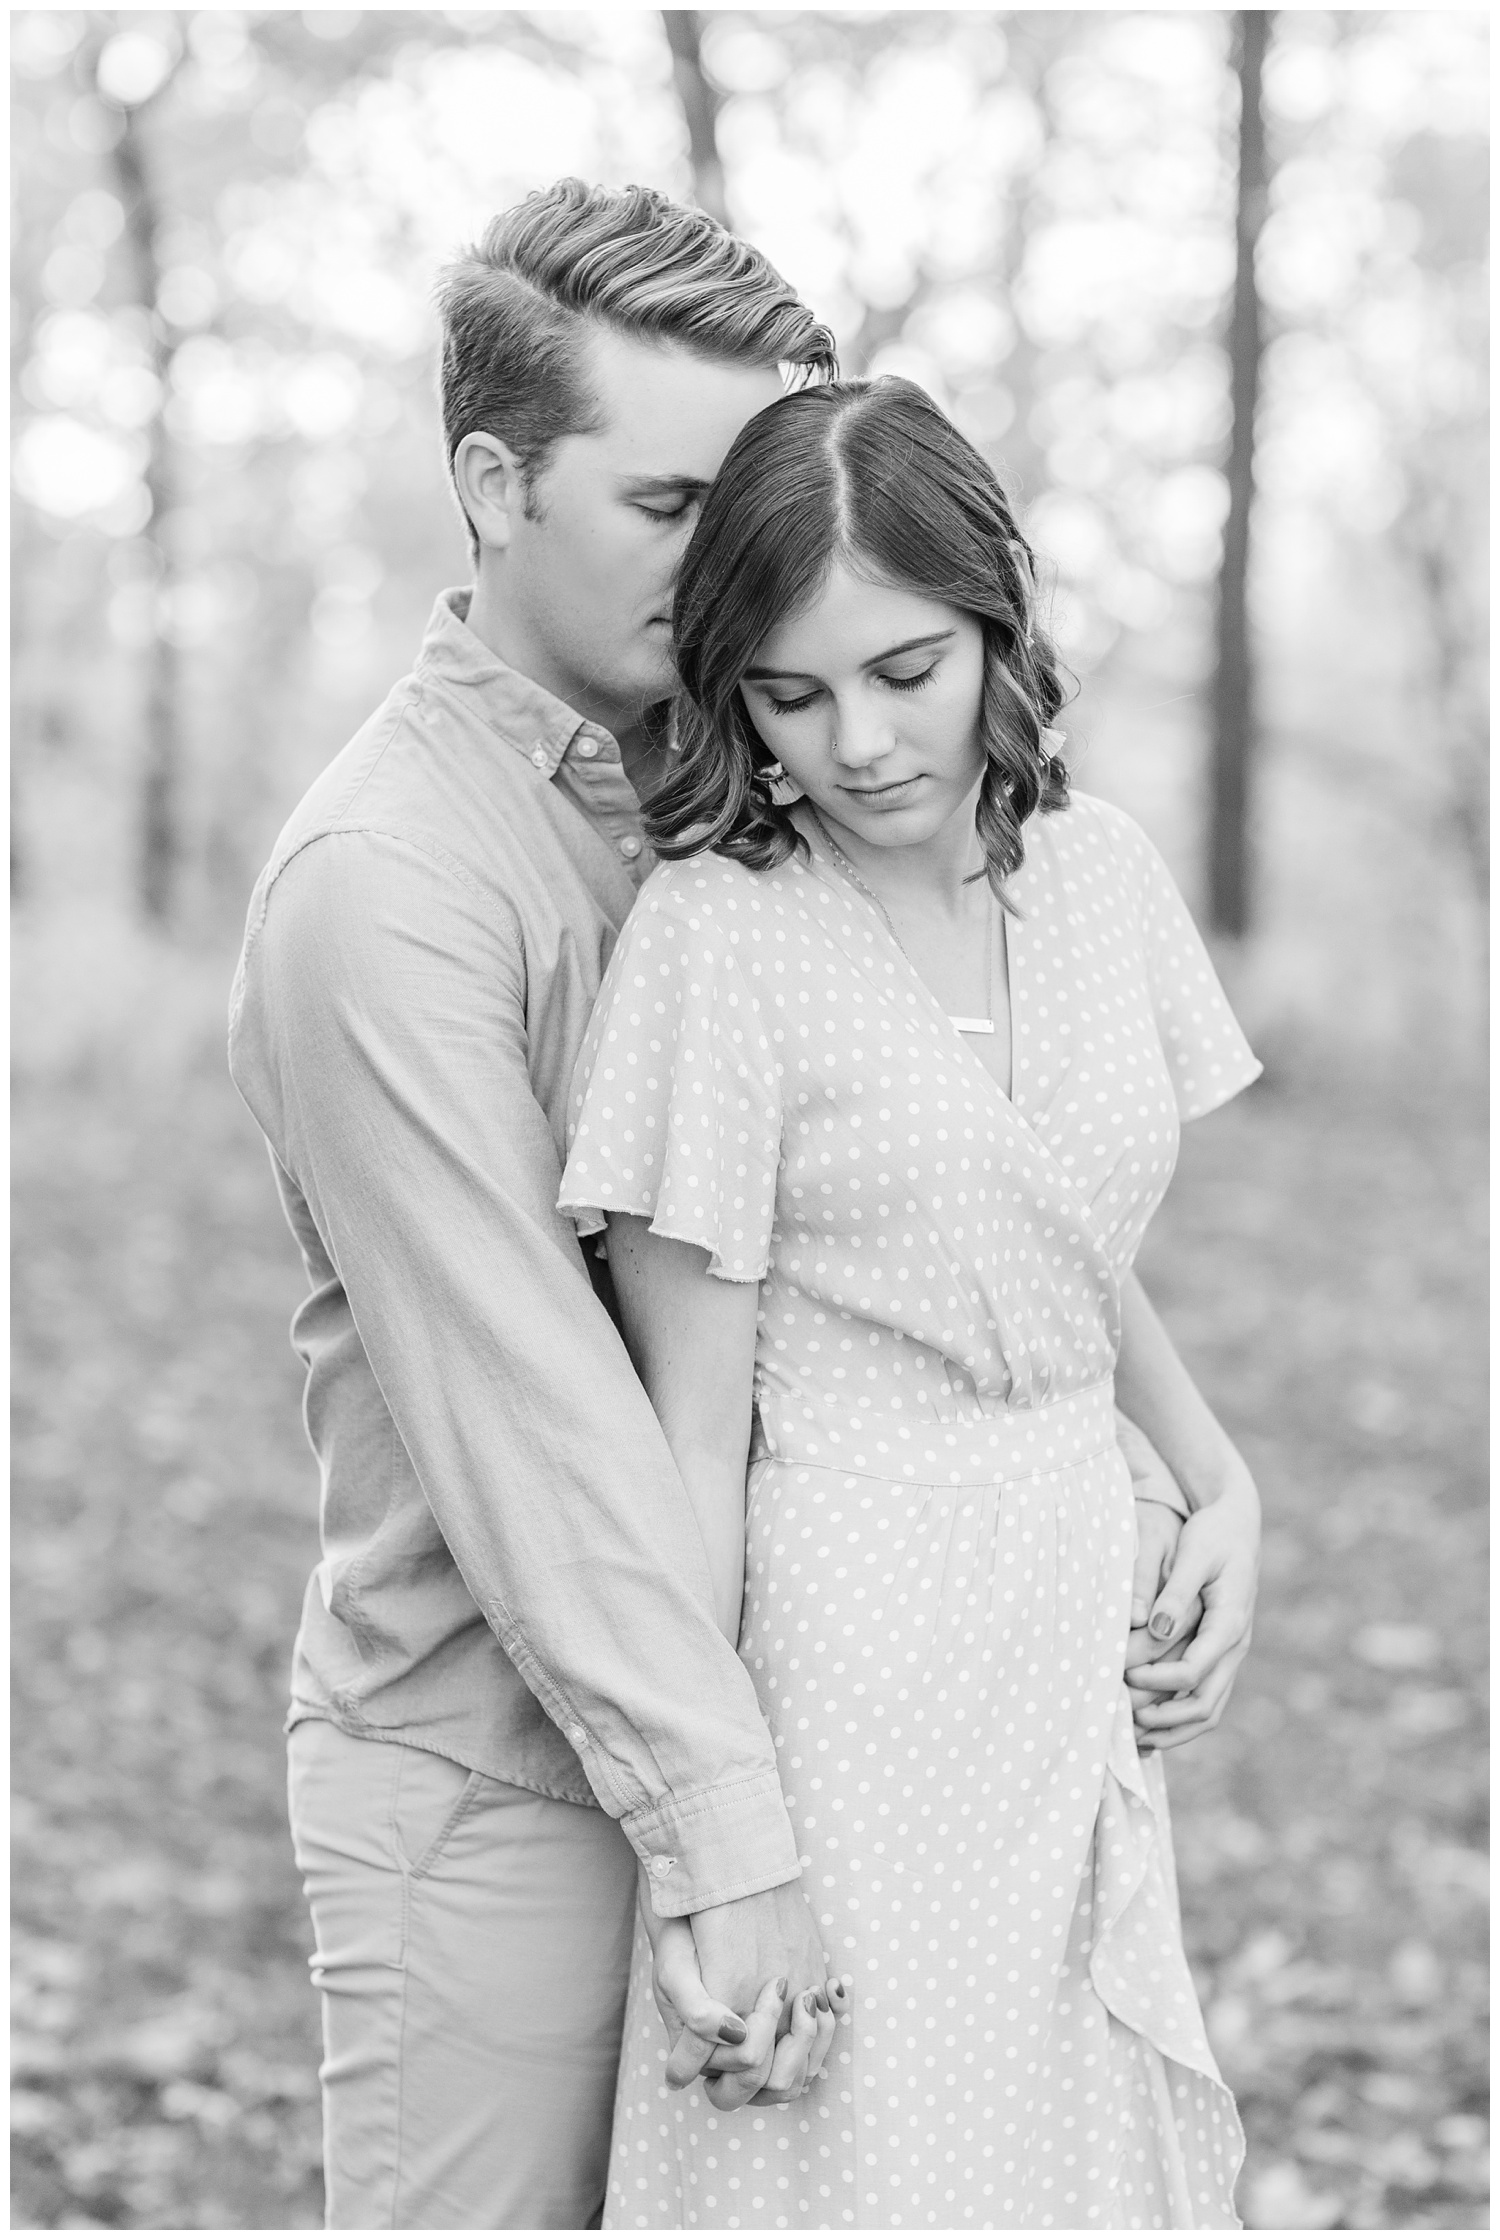 Jadi wearing a yellow flowing dress lovingly looks down as Luke whispers into her ear while embracing together in a grassy field in Iowa during the fall for engagement photos | CB Studio